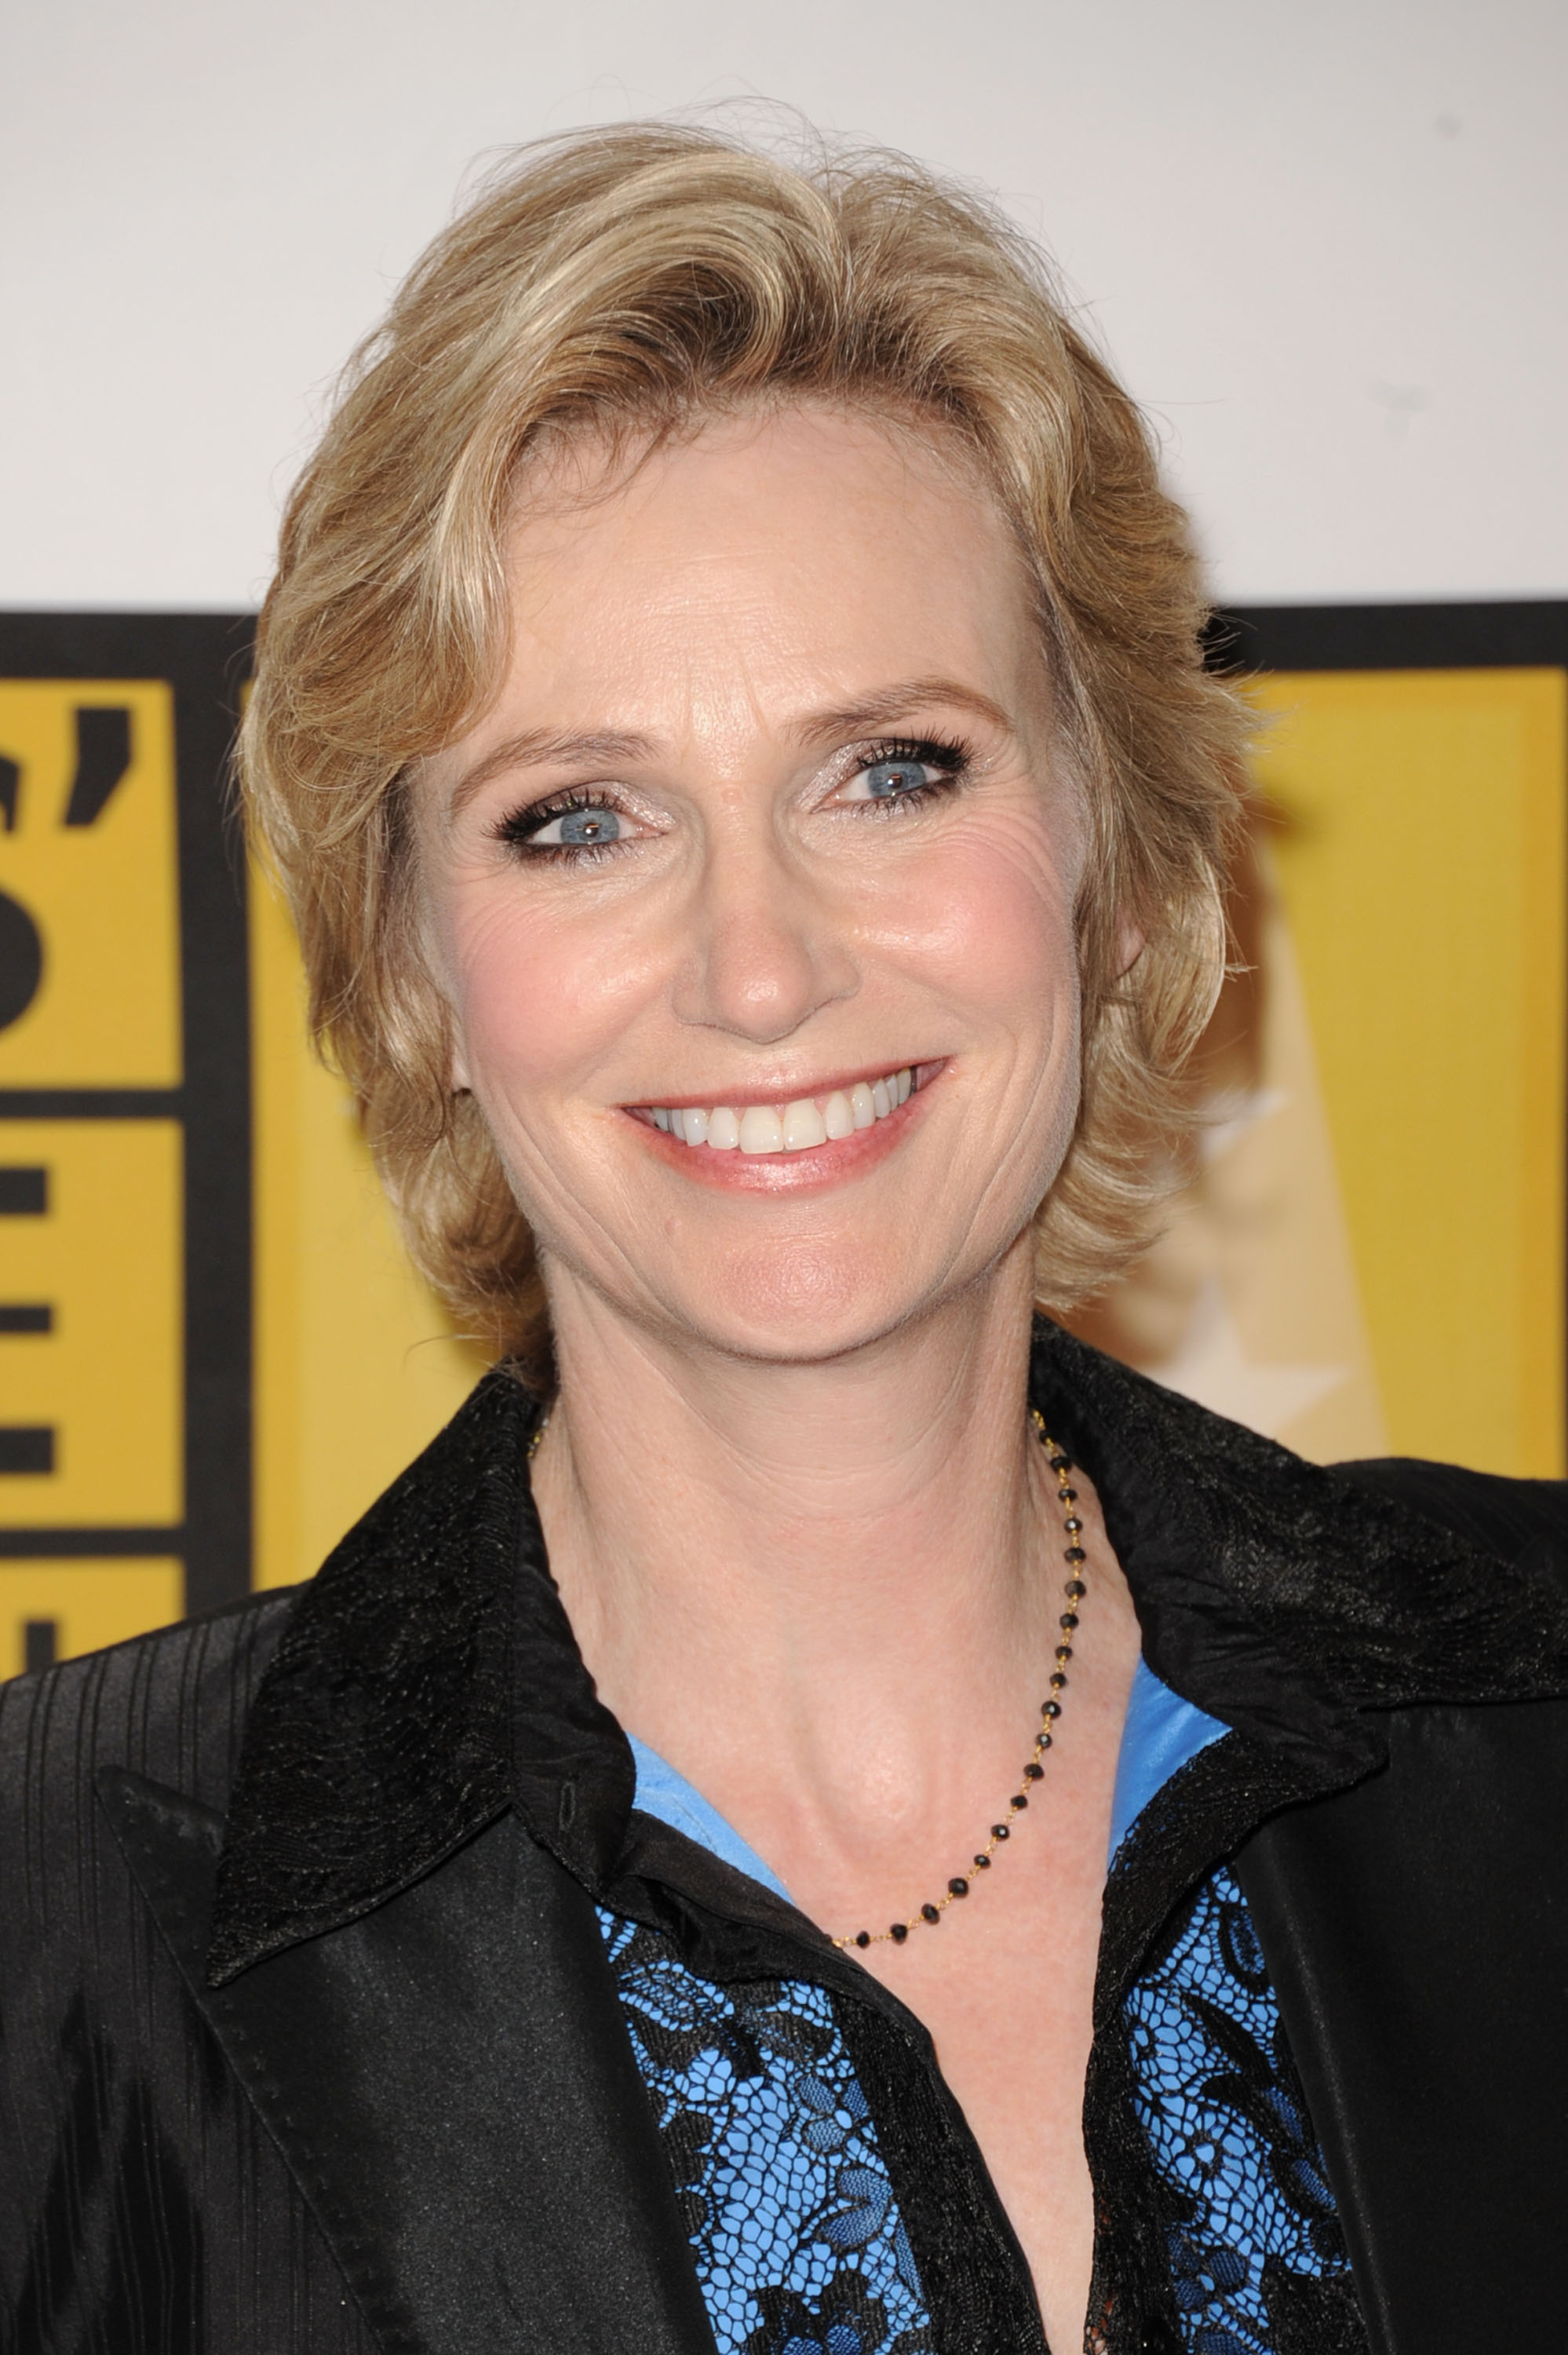 Jane Lynch Talks Glee Pregnancy: 'I Would Rather Not Give